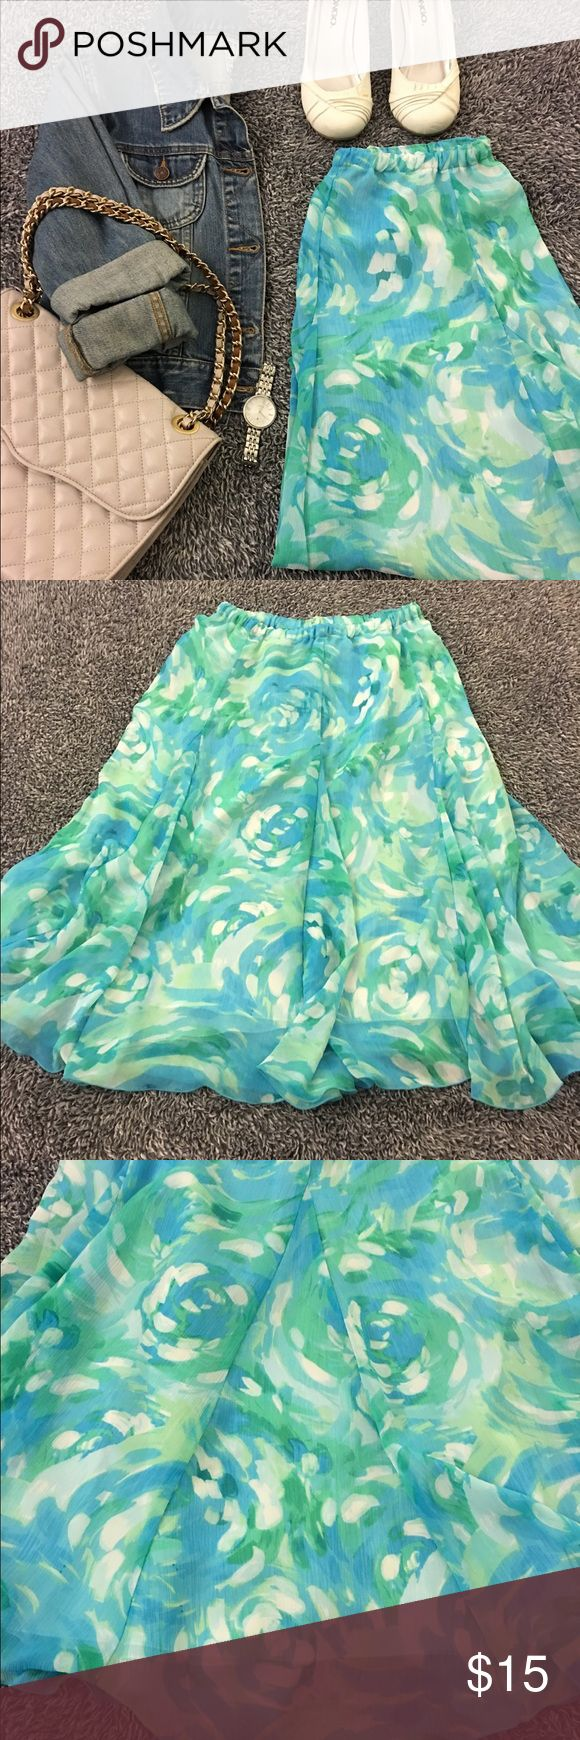 Springy skirt - water colors & a-line style! Perfect feminine skirt with great style & flow. Soft & springy colors in blue/green tones. Elastic waist & mid length. Great shape. I didn't find any real flaws so if there are any they are not noticeable. Great shape & smoke free. See pics for details & condition! Would look good with light colored blazers or cardigans or a denim jacket. Waist is 13-18 in. flat with elastic. Hips are 18 with a line fit. Length is 27.5 inches. Has lining…